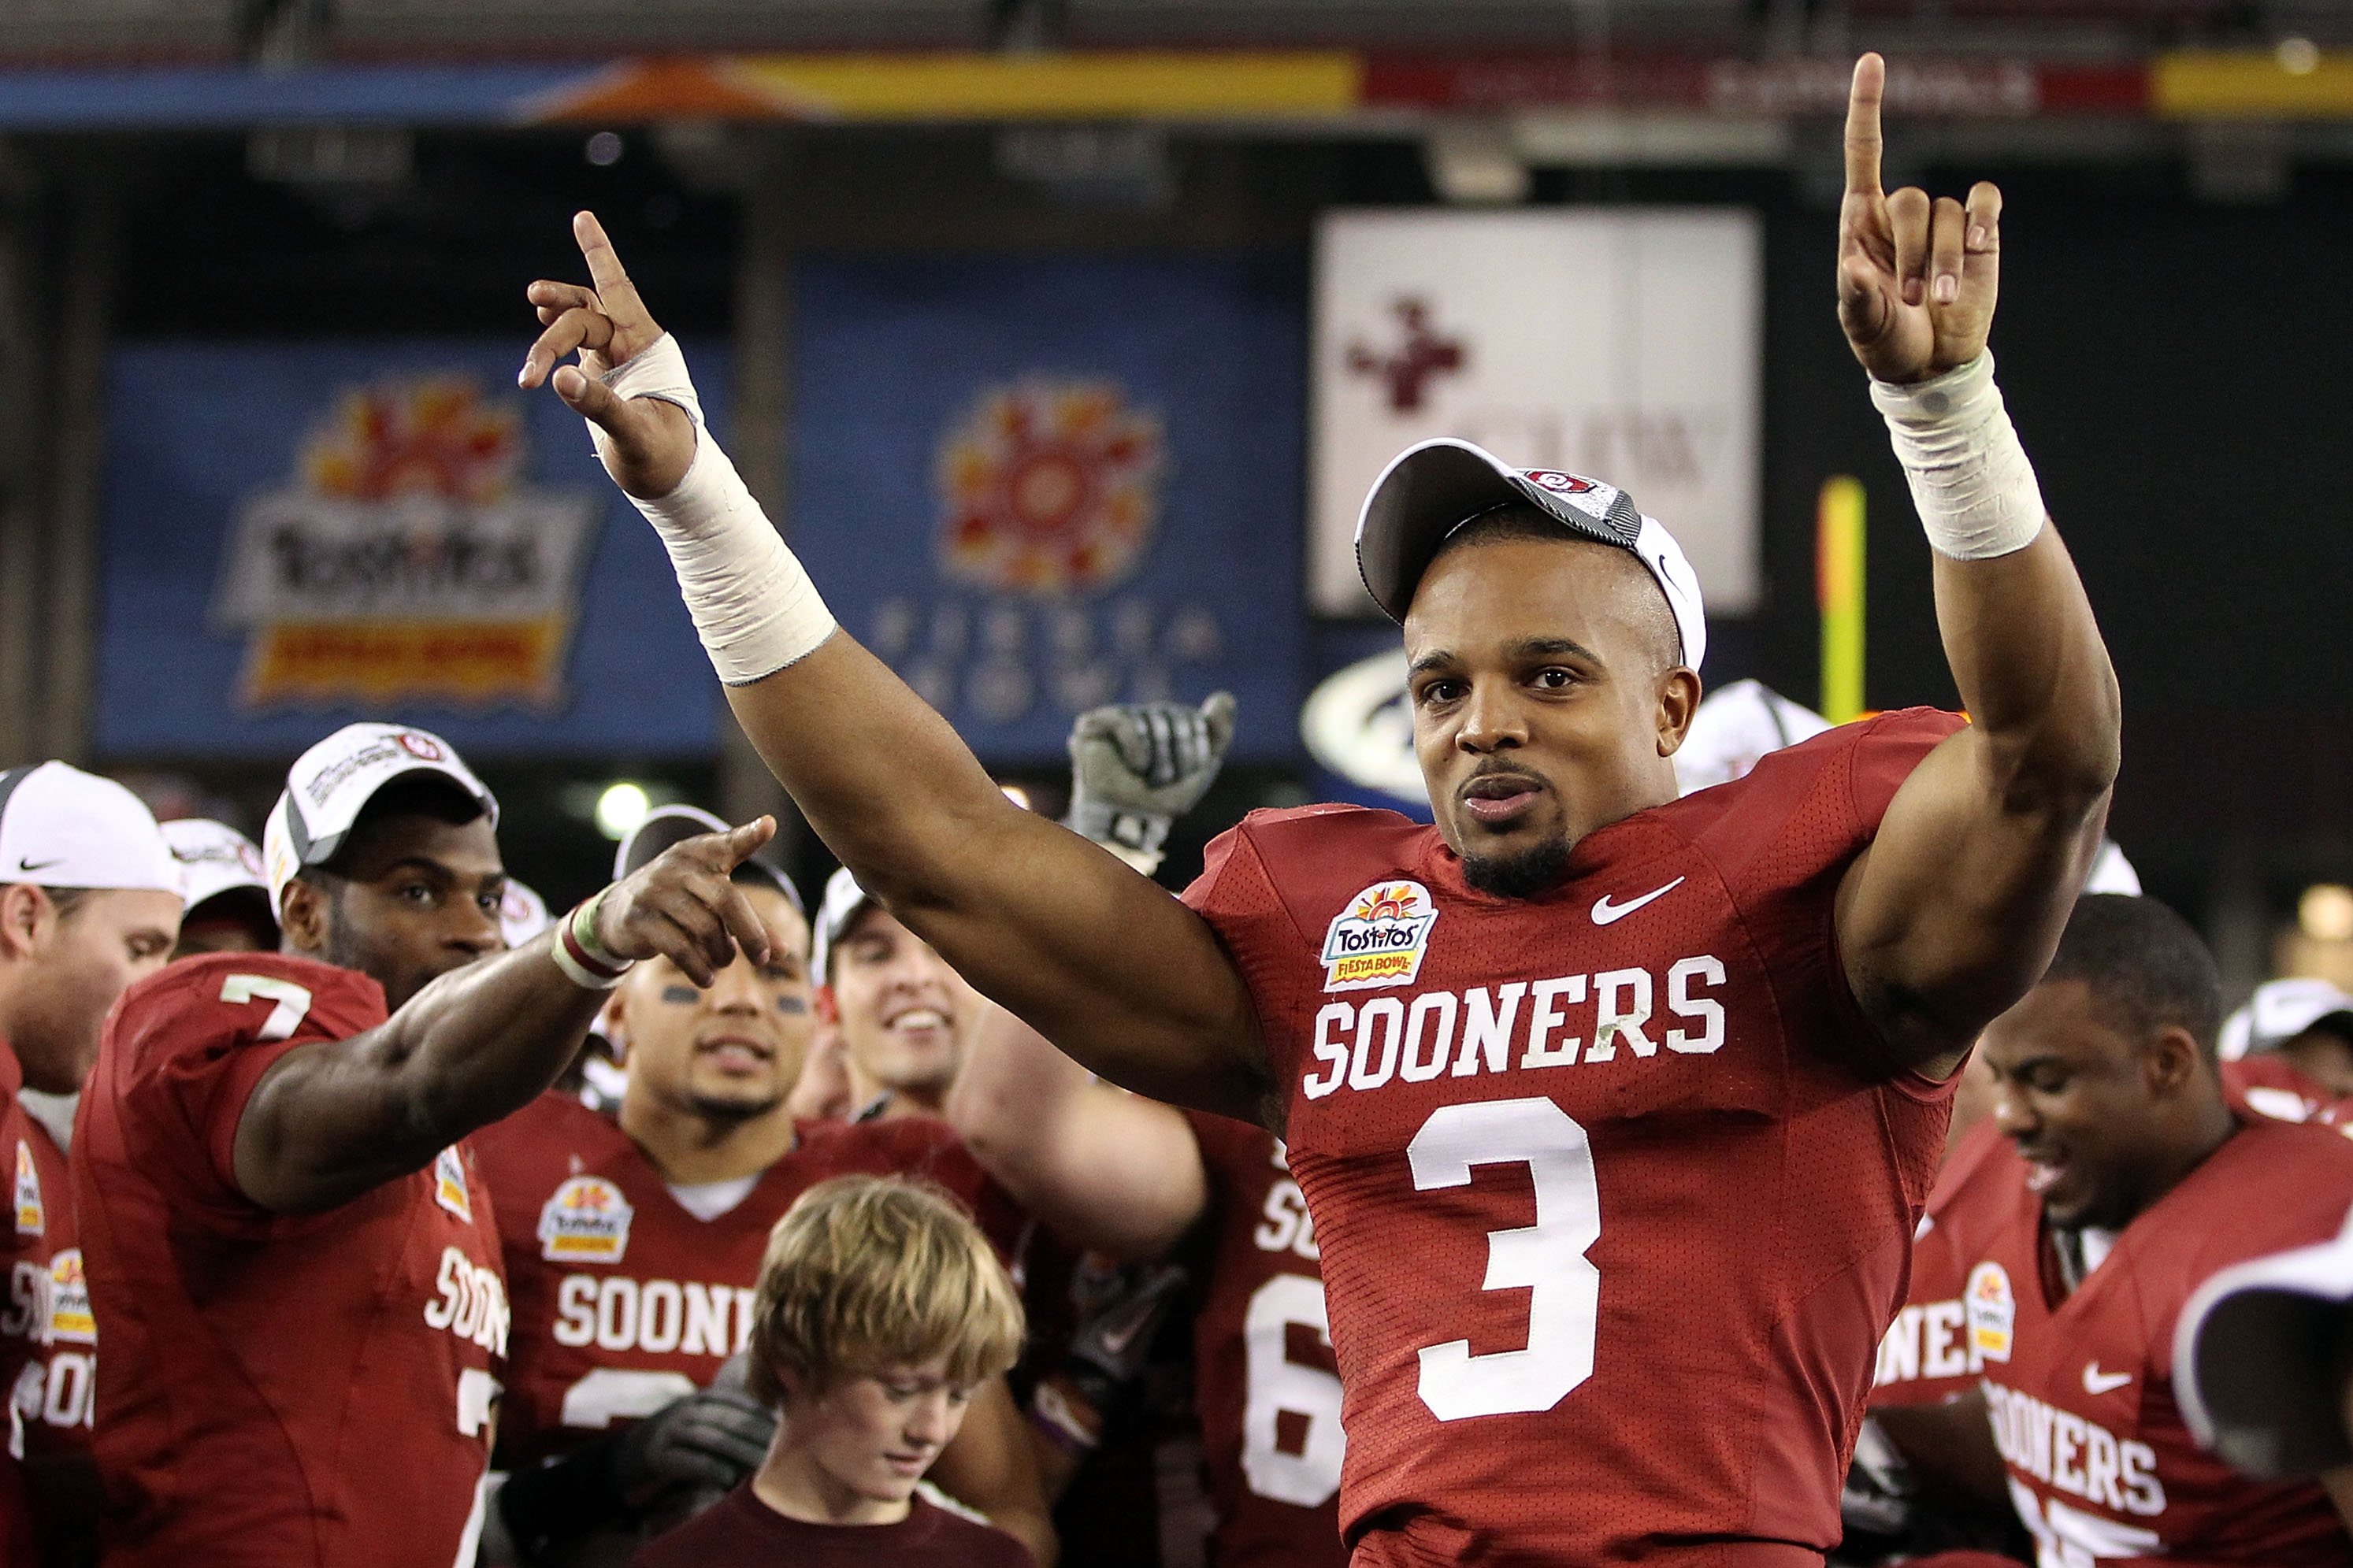 GLENDALE, AZ - JANUARY 01:  Jonathan Nelson #3 of the Oklahoma Sooners celebrates the Sooners 48-20 victory against the Connecticut Huskies during the Tostitos Fiesta Bowl at the Universtity of Phoenix Stadium on January 1, 2011 in Glendale, Arizona.  (Ph